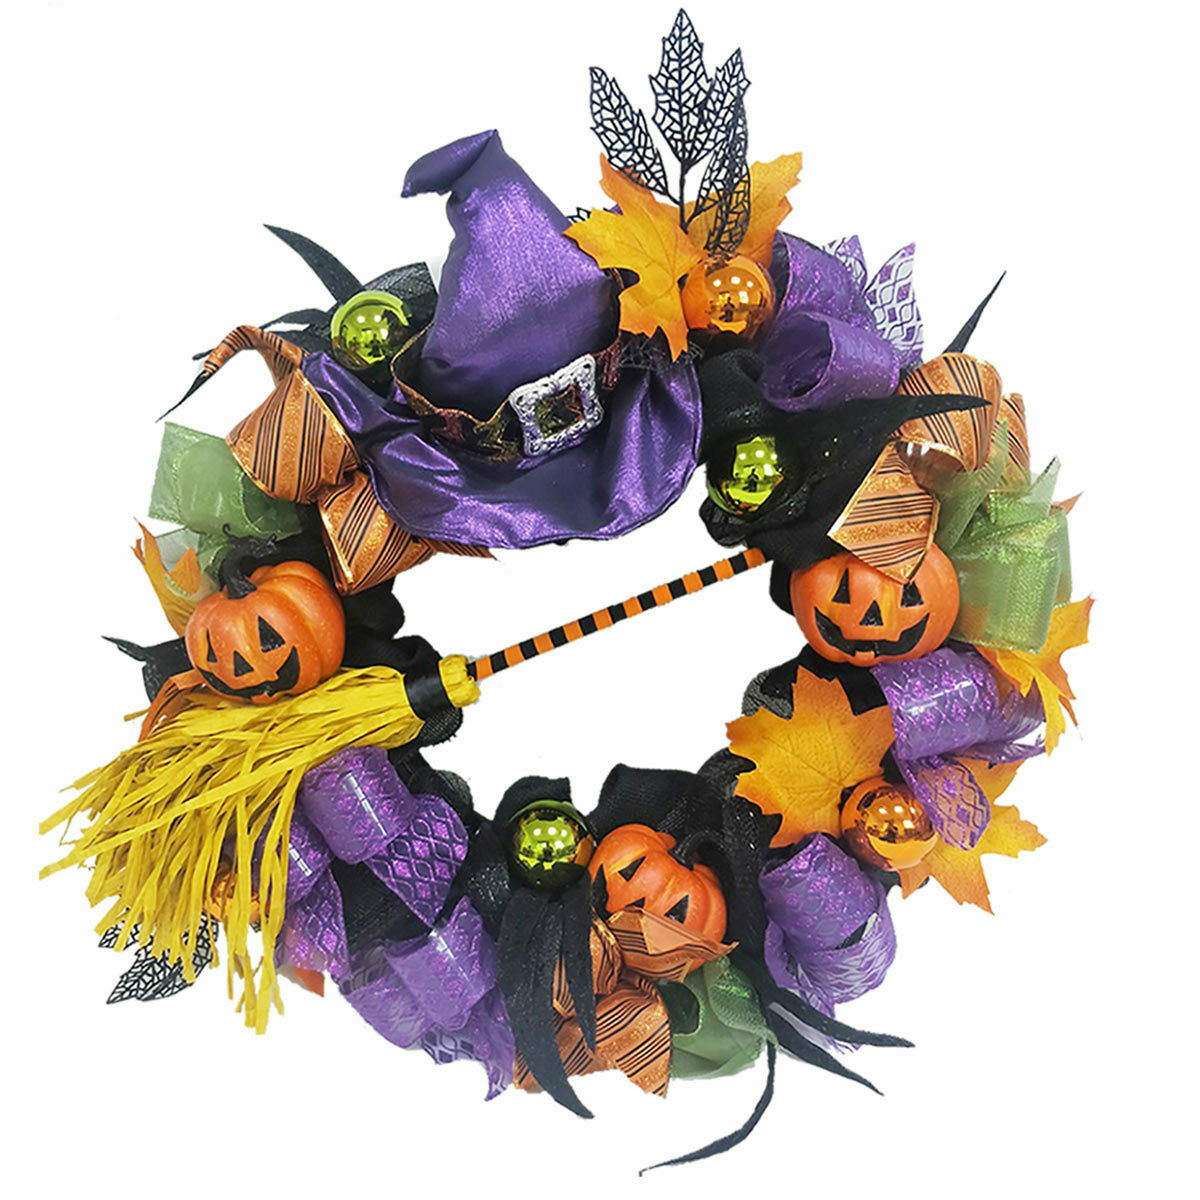 Halloween 24  (60cm) Decorative Witch Wreath Indoor and Shelterot Outdoor Use